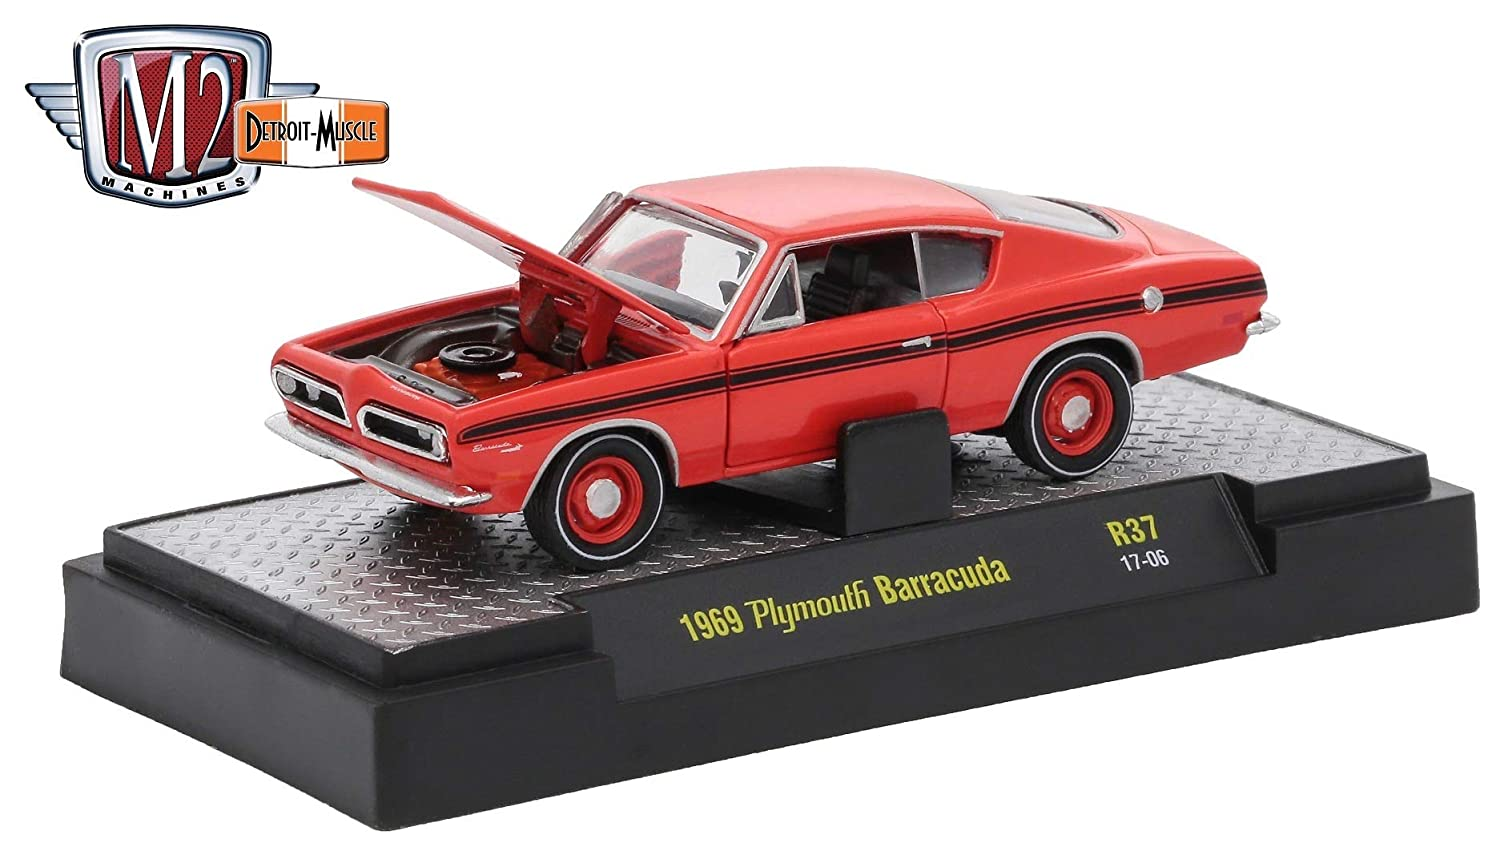 Amazon.com: M2 Machines 1969 Plymouth Barracuda (Matador Red) - Detroit Muscle Release 37 2017 Castline Premium Edition 1:64 Scale Die-Cast Vehicle (R37 ...